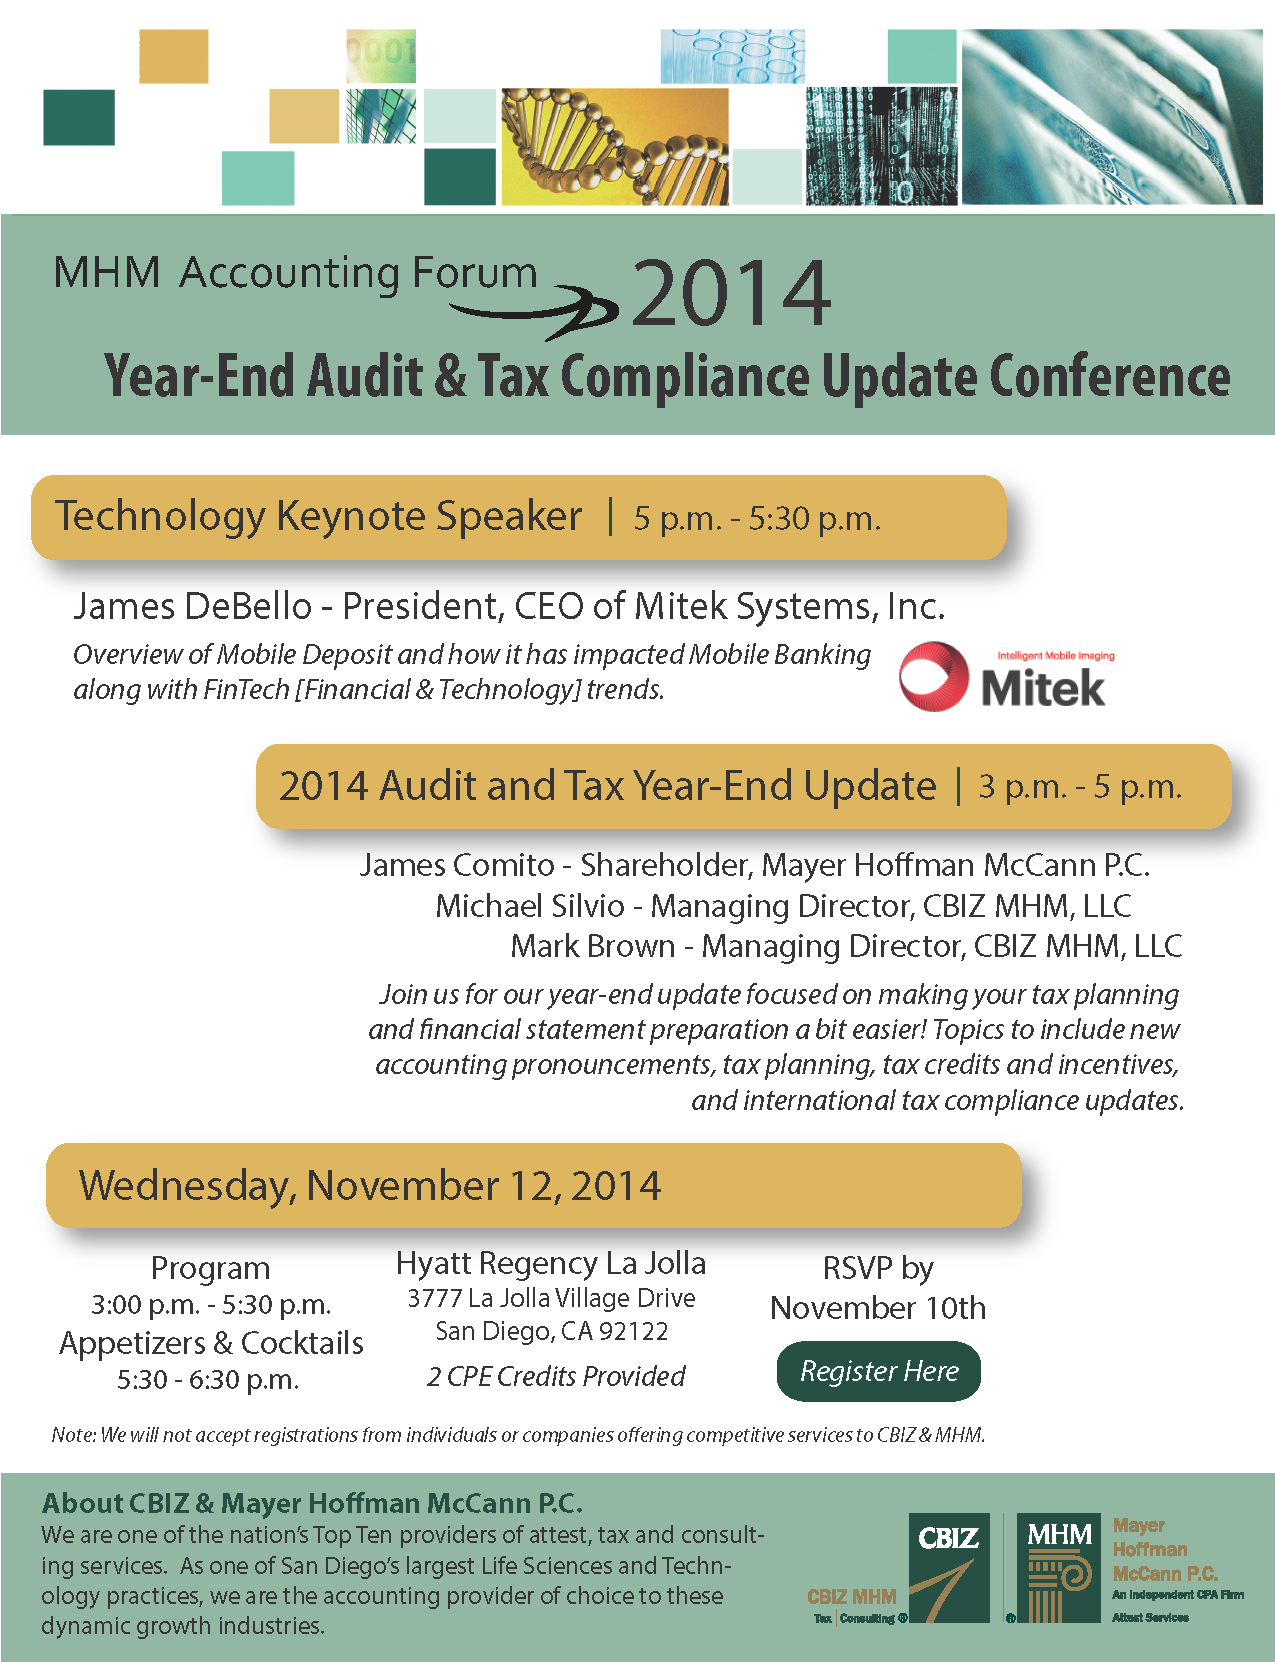 Year-End Audit and Tax Update Conference |